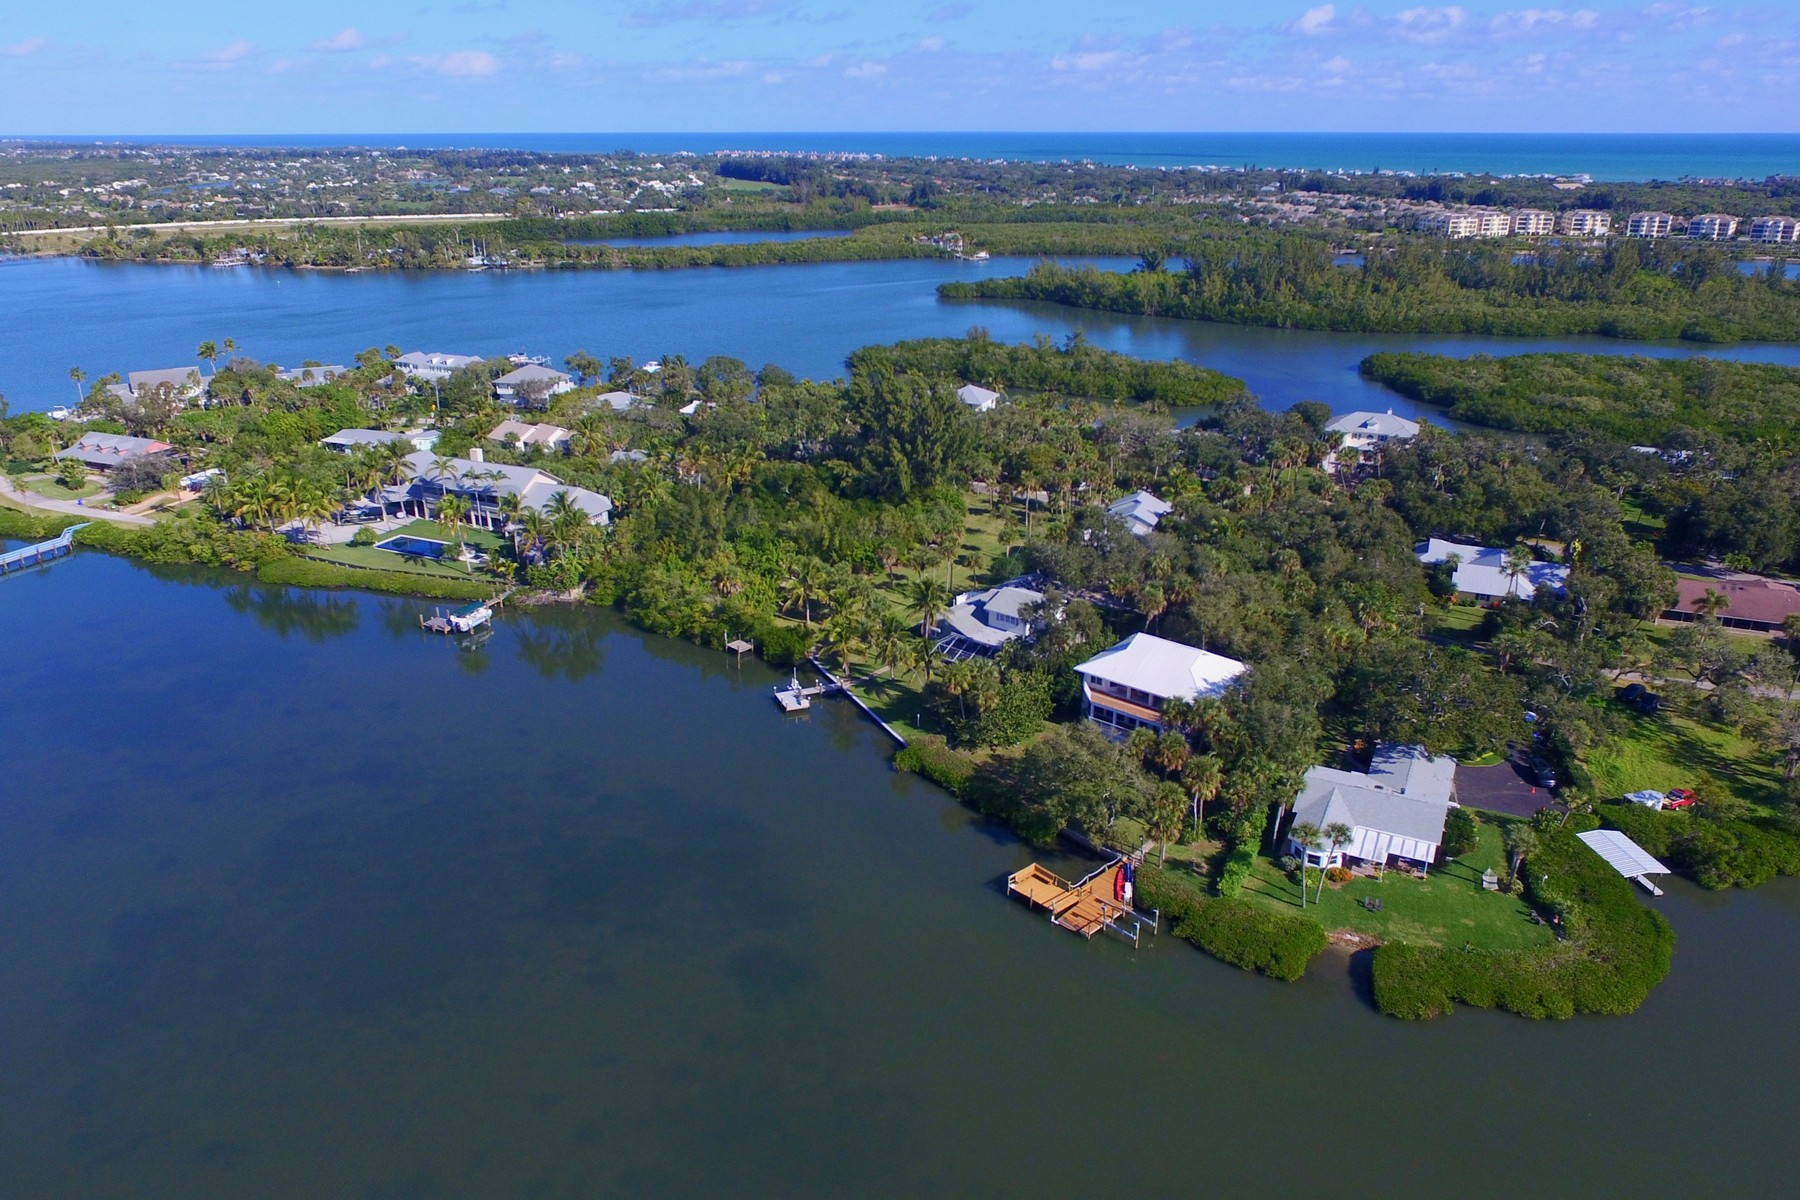 Property для того Продажа на Breathe in Endless Views of Playful Dolphin, Vivid Sunsets and Peaceful Kayakers 335 Cathedral Oaks Dr Vero Beach, Флорида 32963 Соединенные Штаты